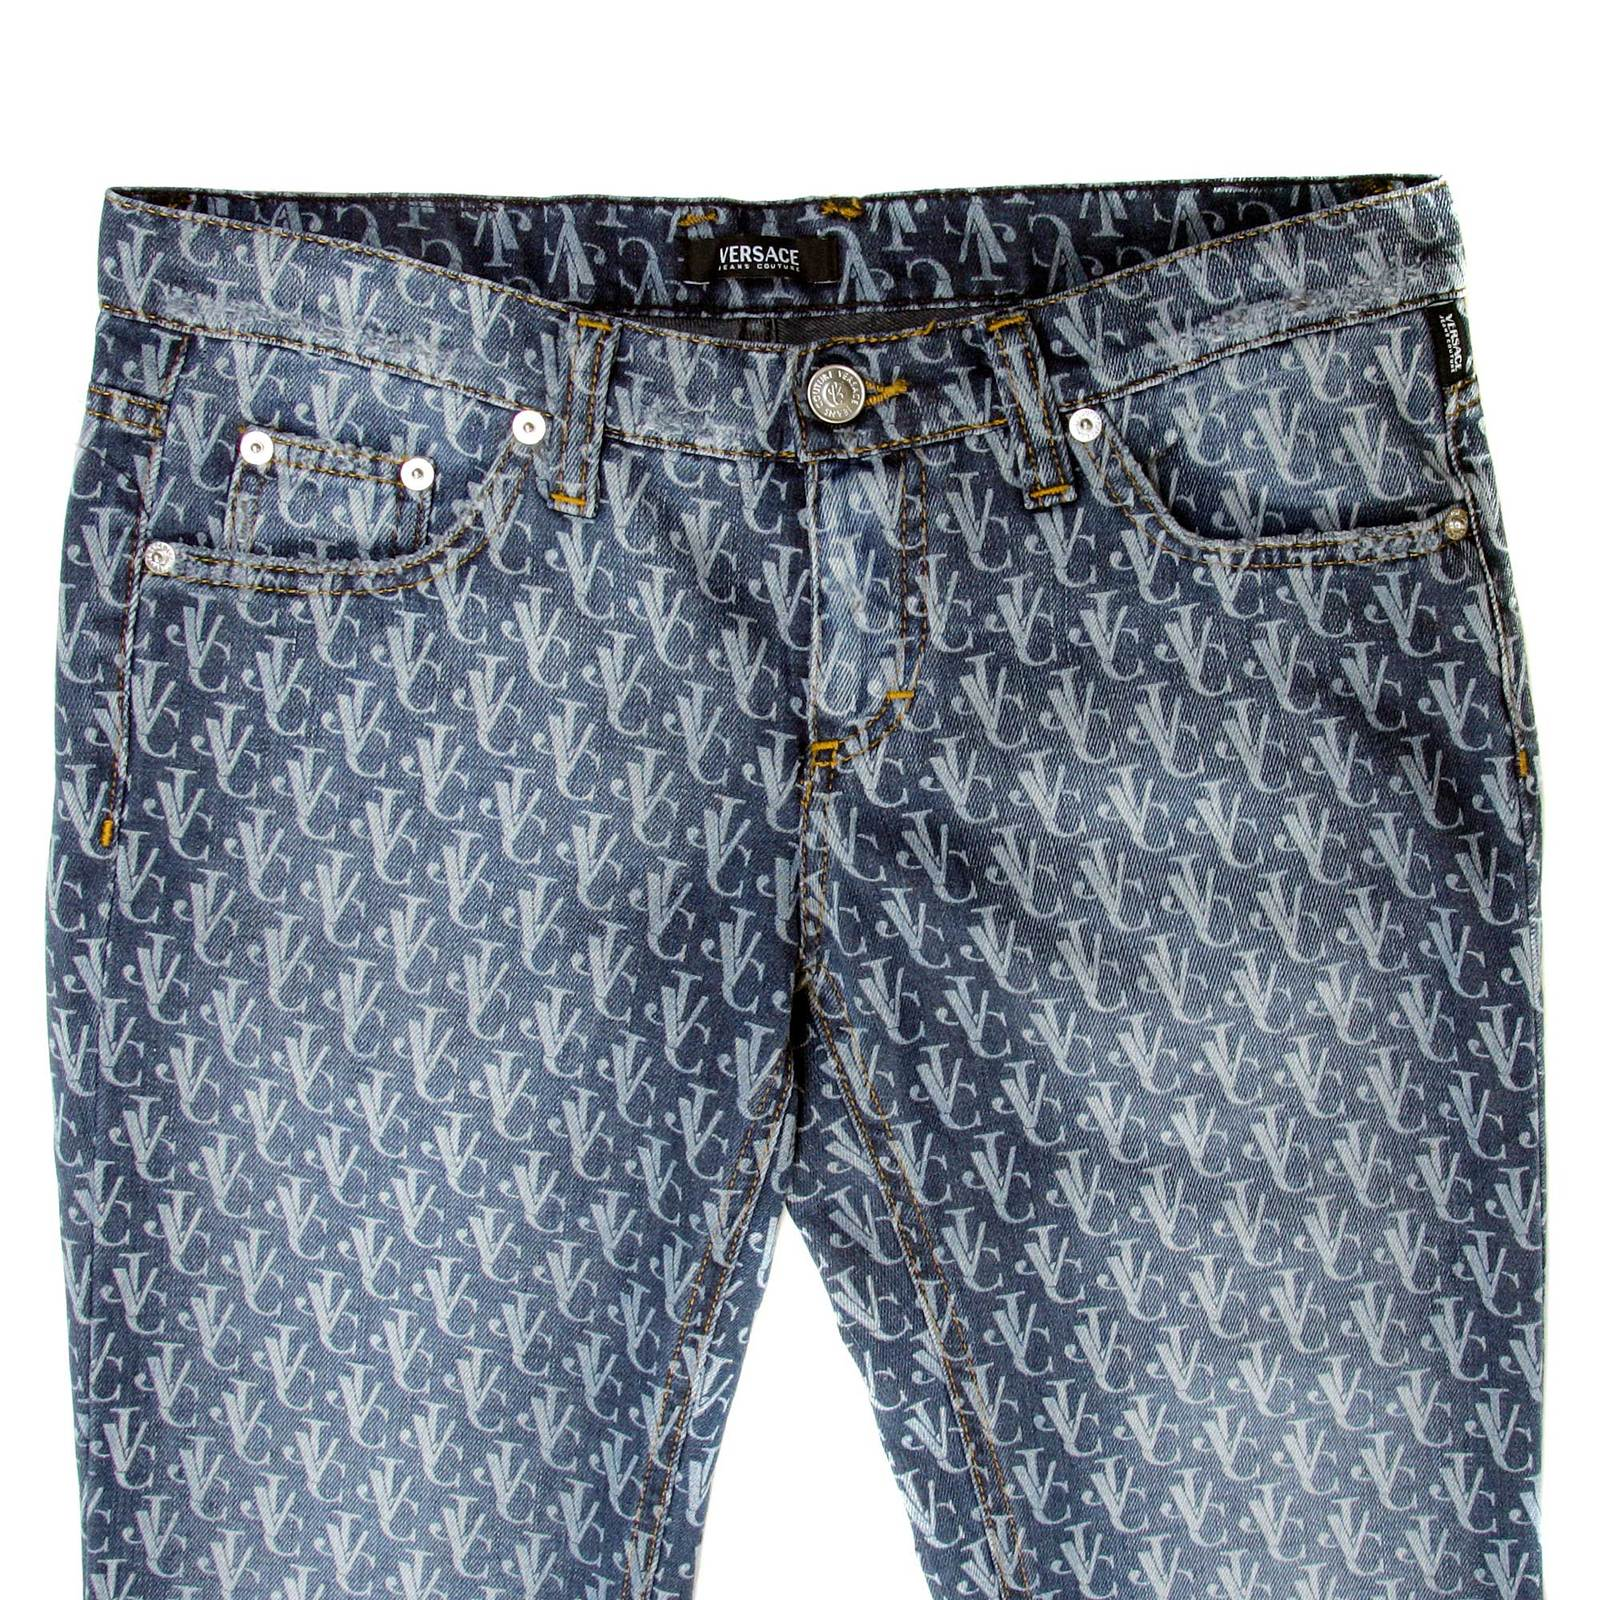 Mens Bootcut Jeans Versace Jeans Couture Discount Popular Buy Cheap Ebay 2018 New Clearance Manchester Cheap Sale Footlocker db32Y